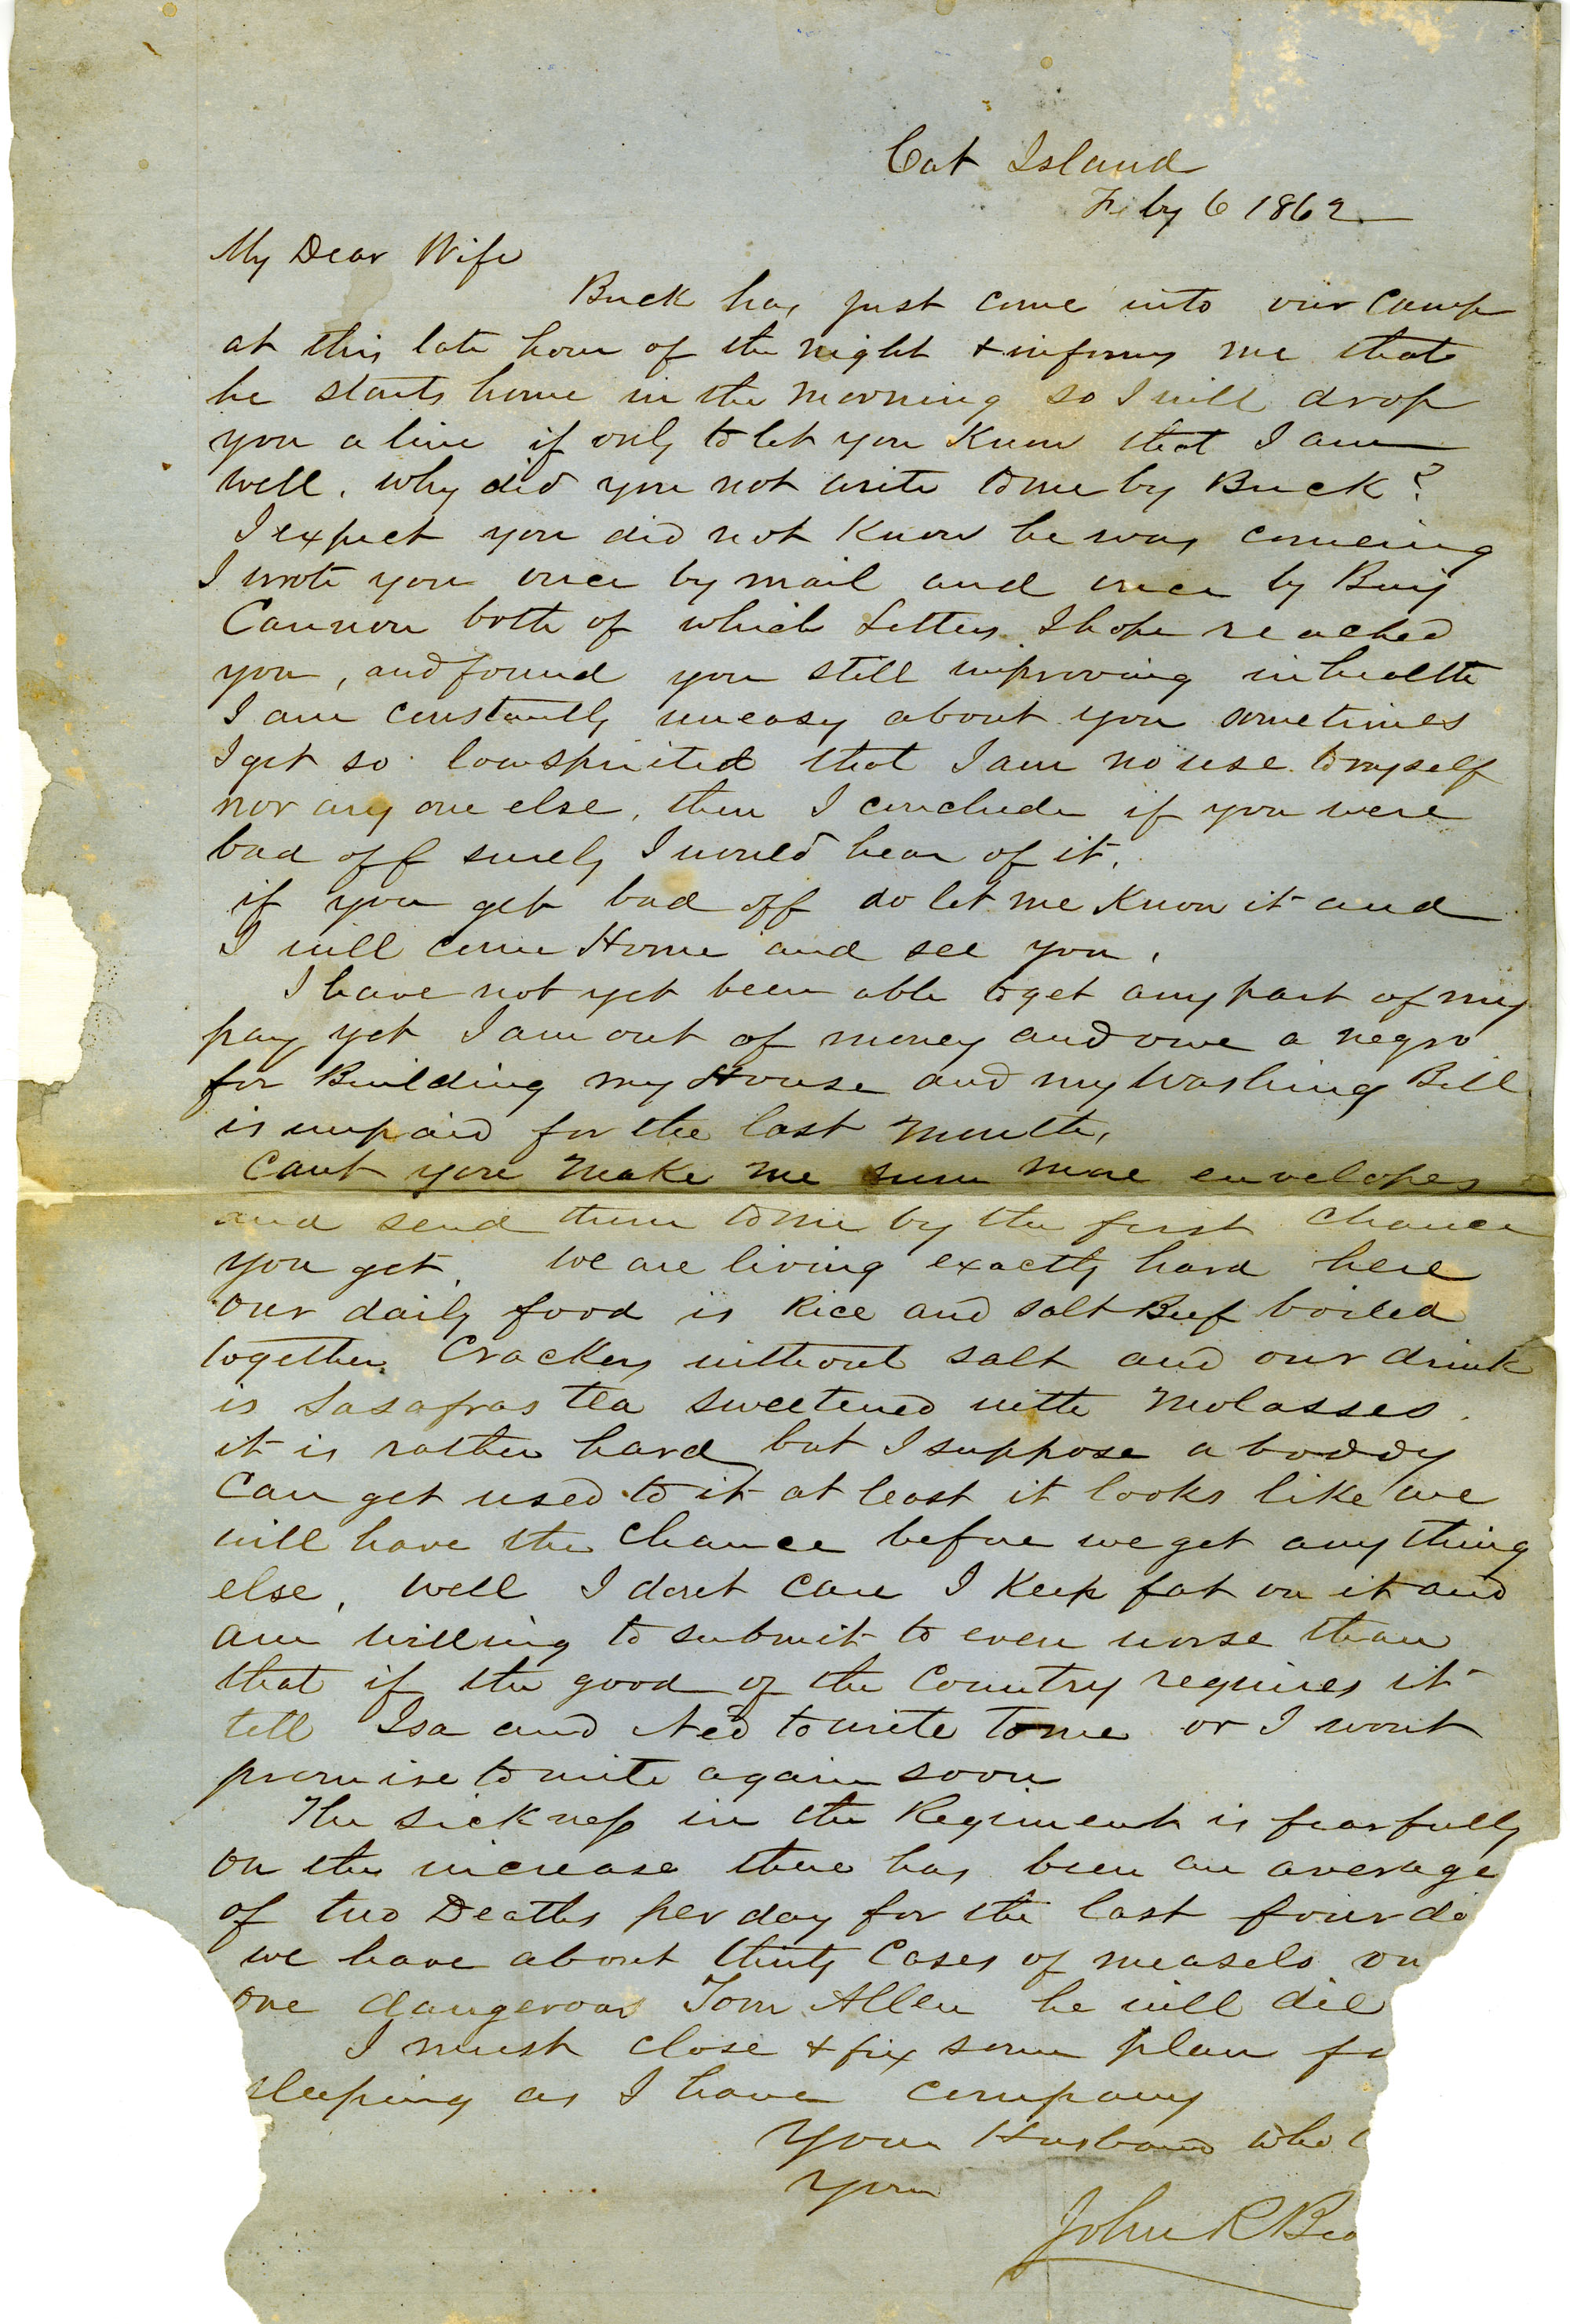 Letter from John R. Beaty to his wife Melvina, February 6, 1862